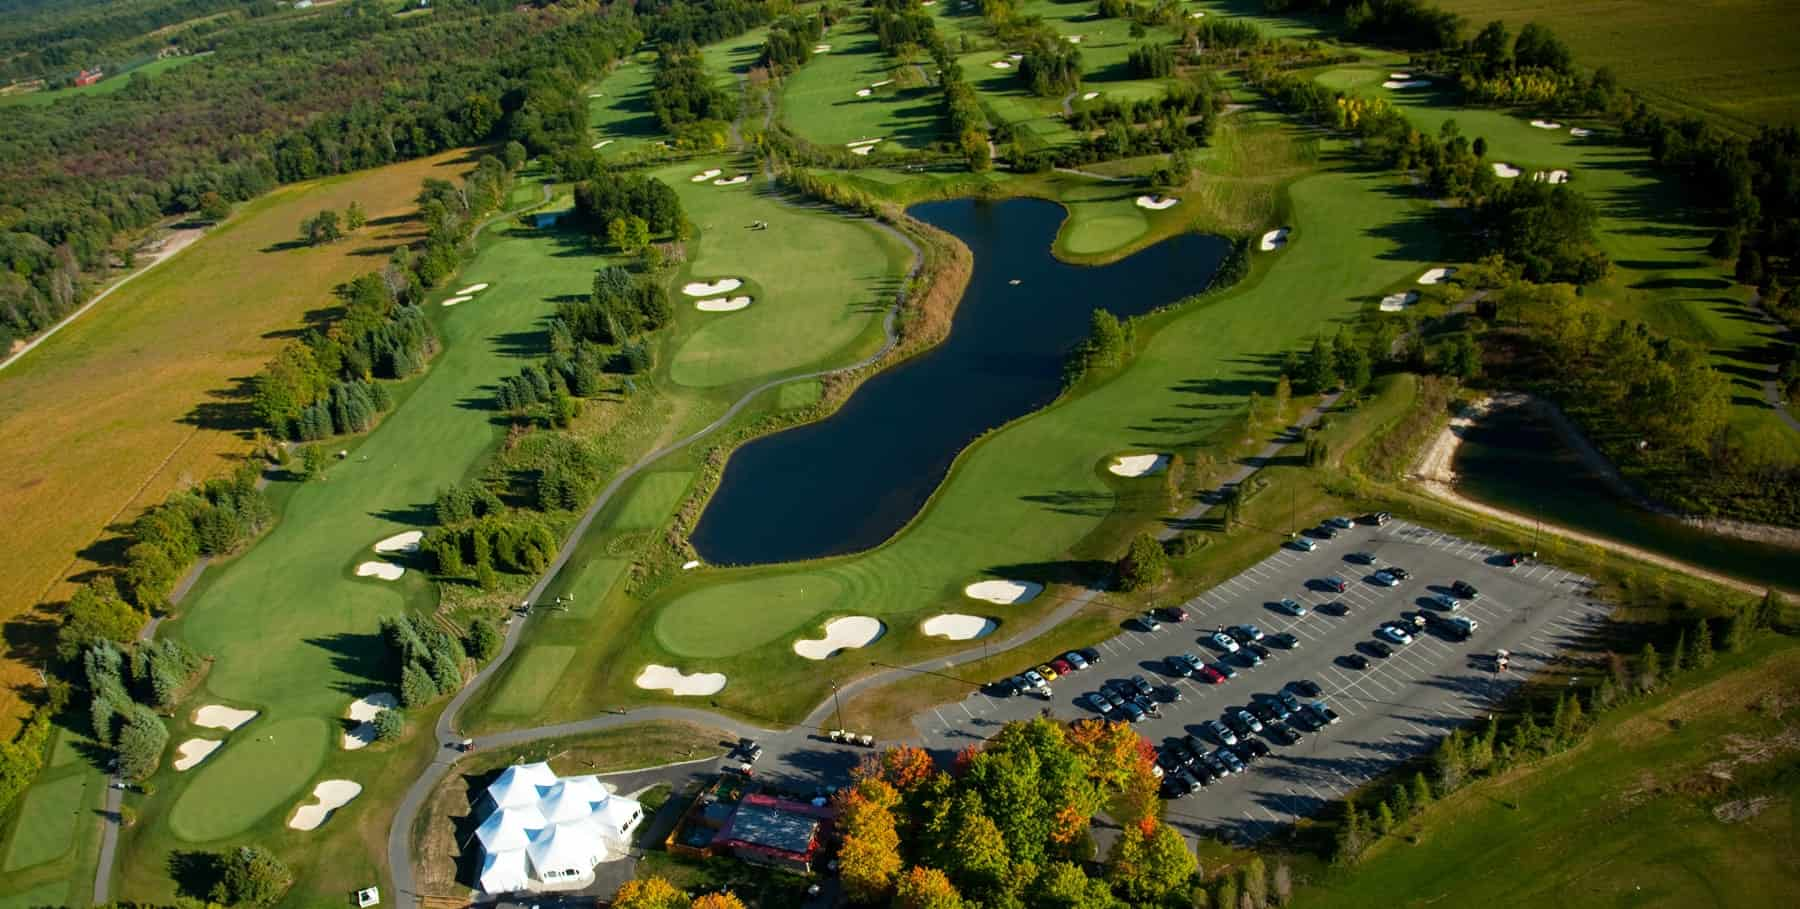 Aerial view of Dragon's Fire Golf Course